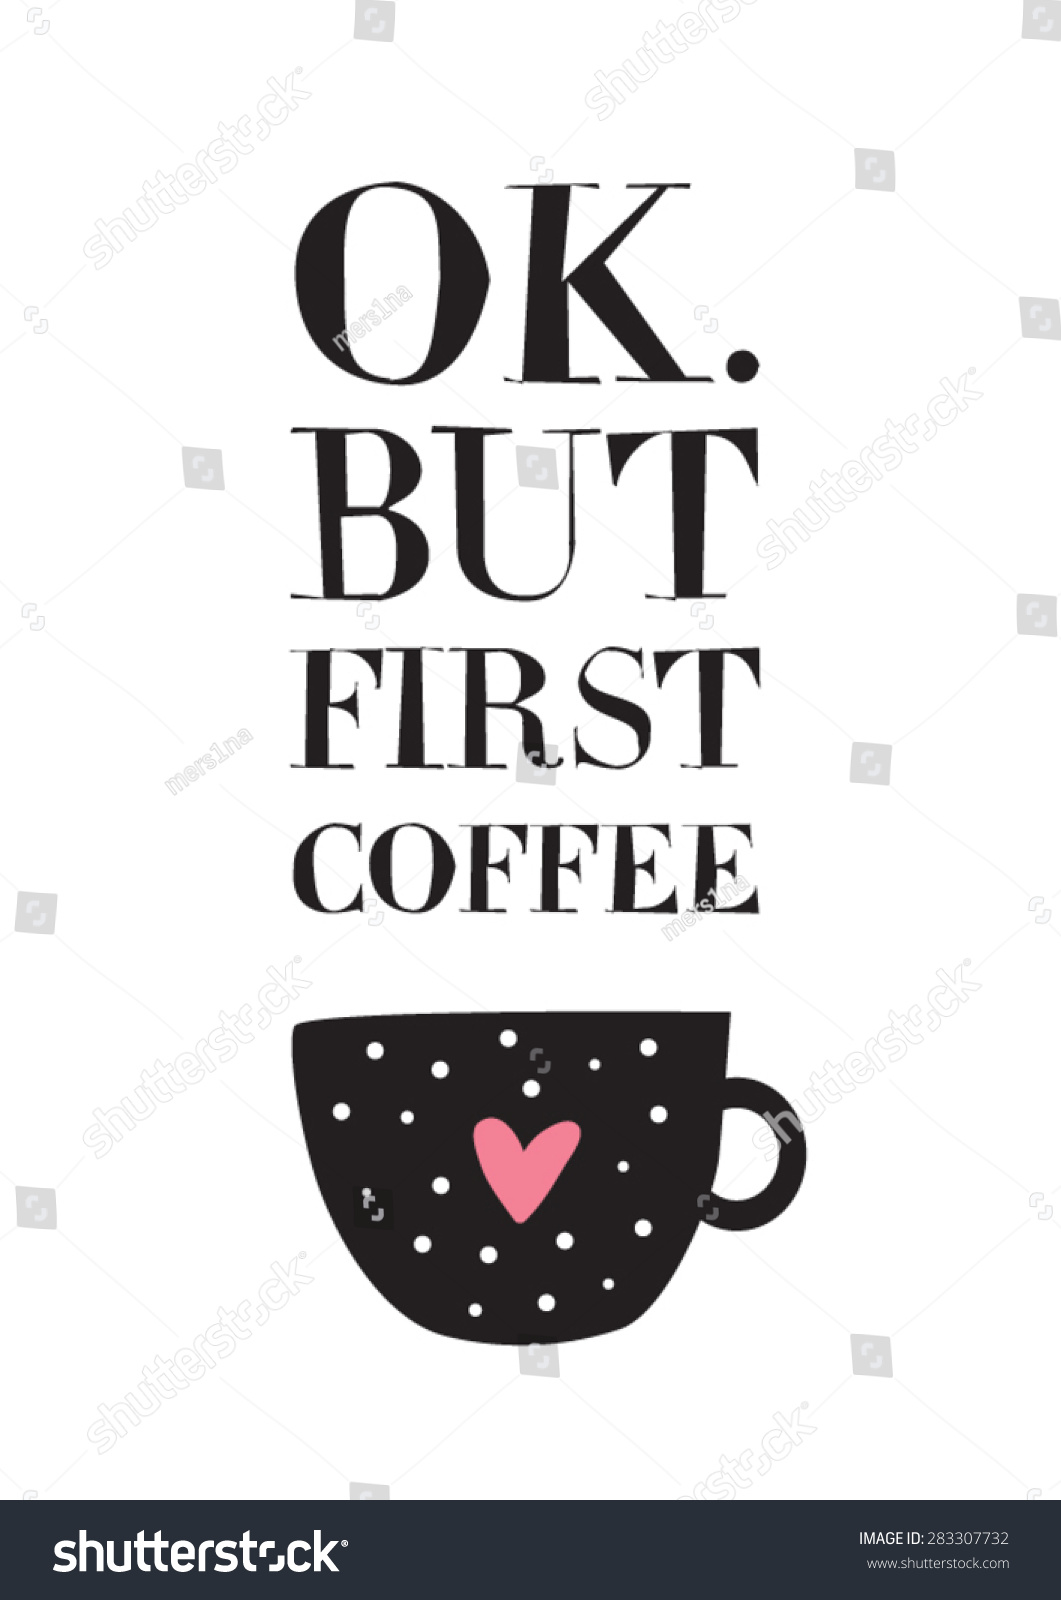 ok first coffee quote vector illustration stock vector 283307732 shutterstock. Black Bedroom Furniture Sets. Home Design Ideas